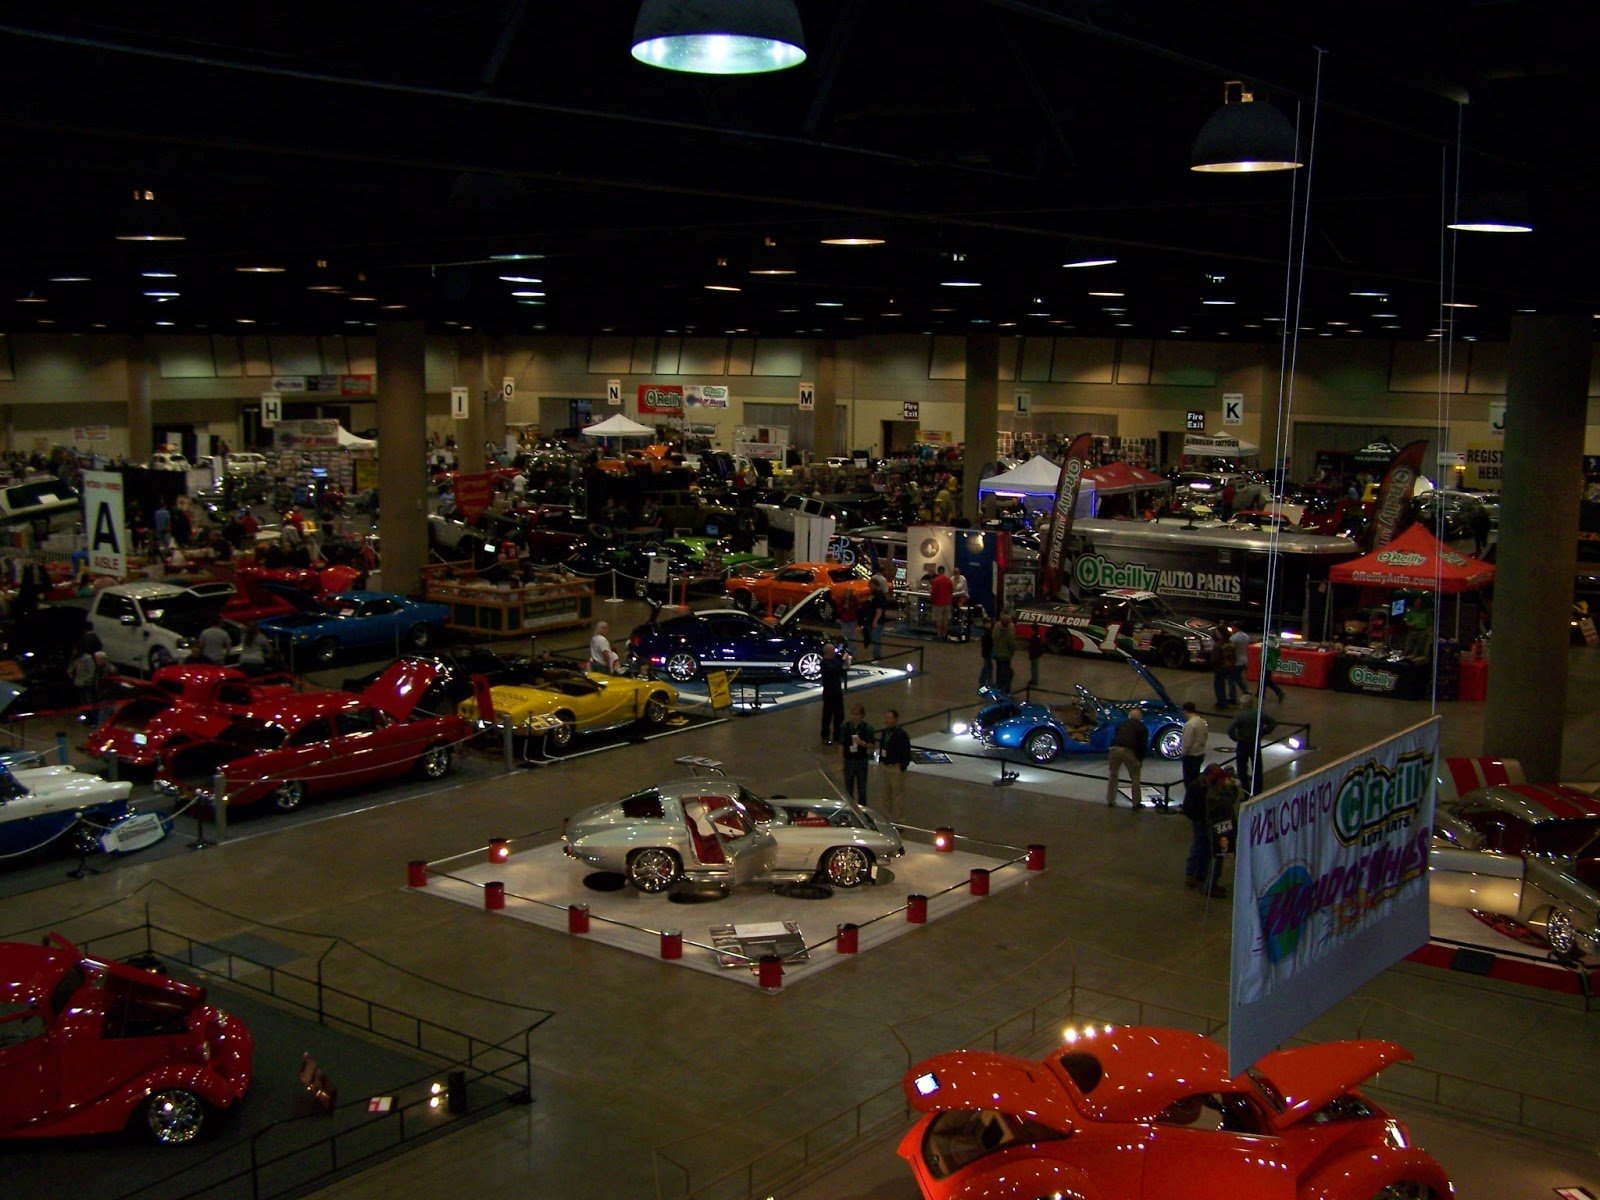 All About Cars O Reilly Auto Parts World Of Wheels Birmingham - Car show birmingham al